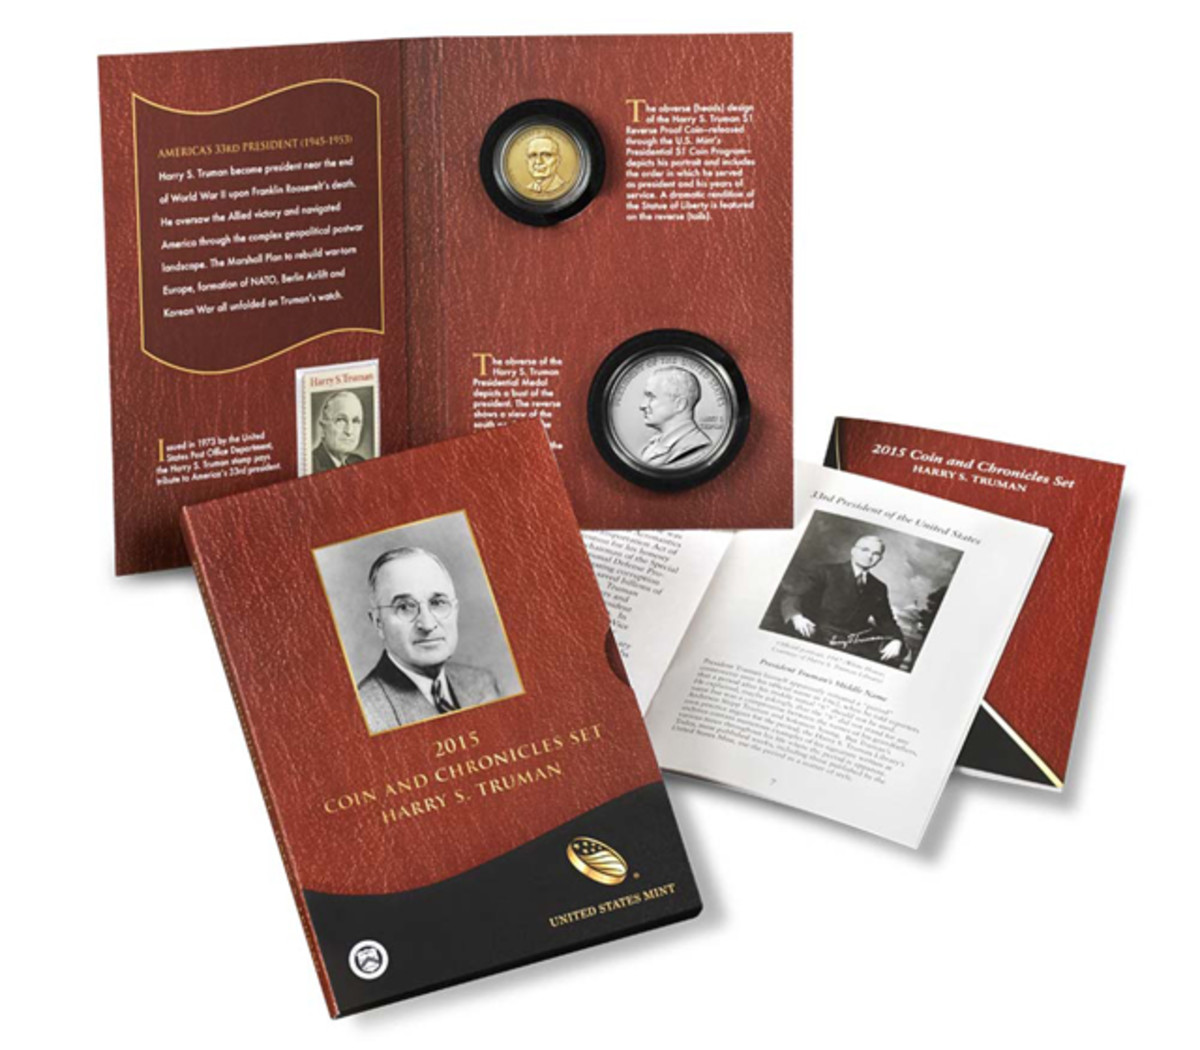 The Truman Coin and Chronicles set goes on sale June 30.